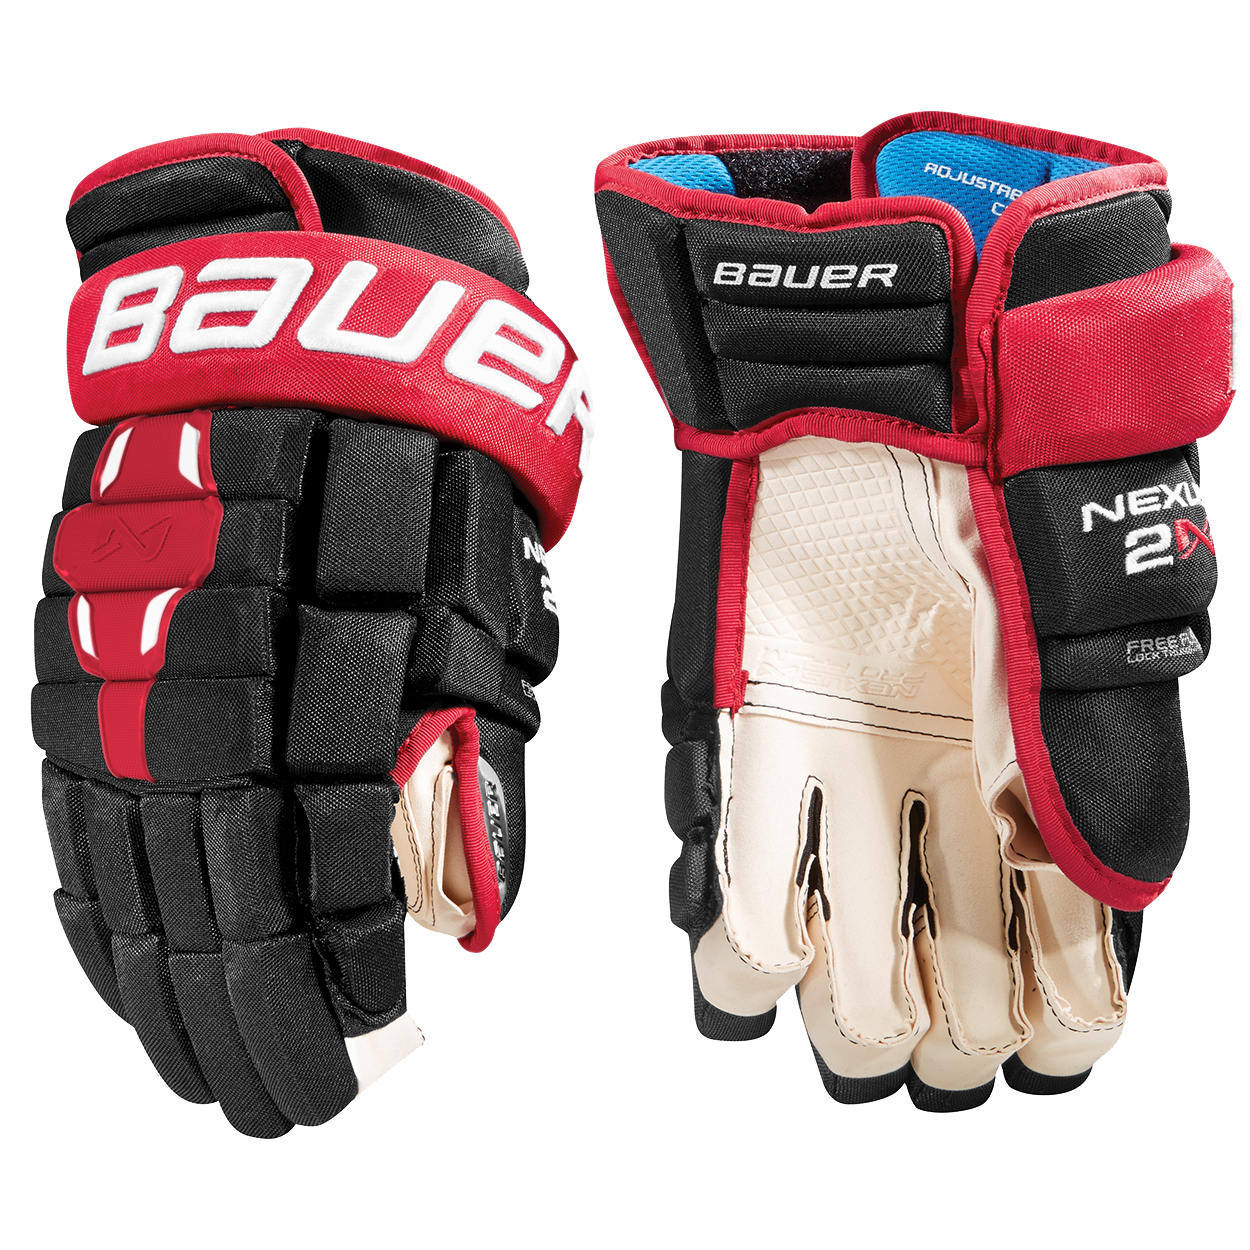 NEXUS 2N Glove - Senior,SCHWARZROT,Medium